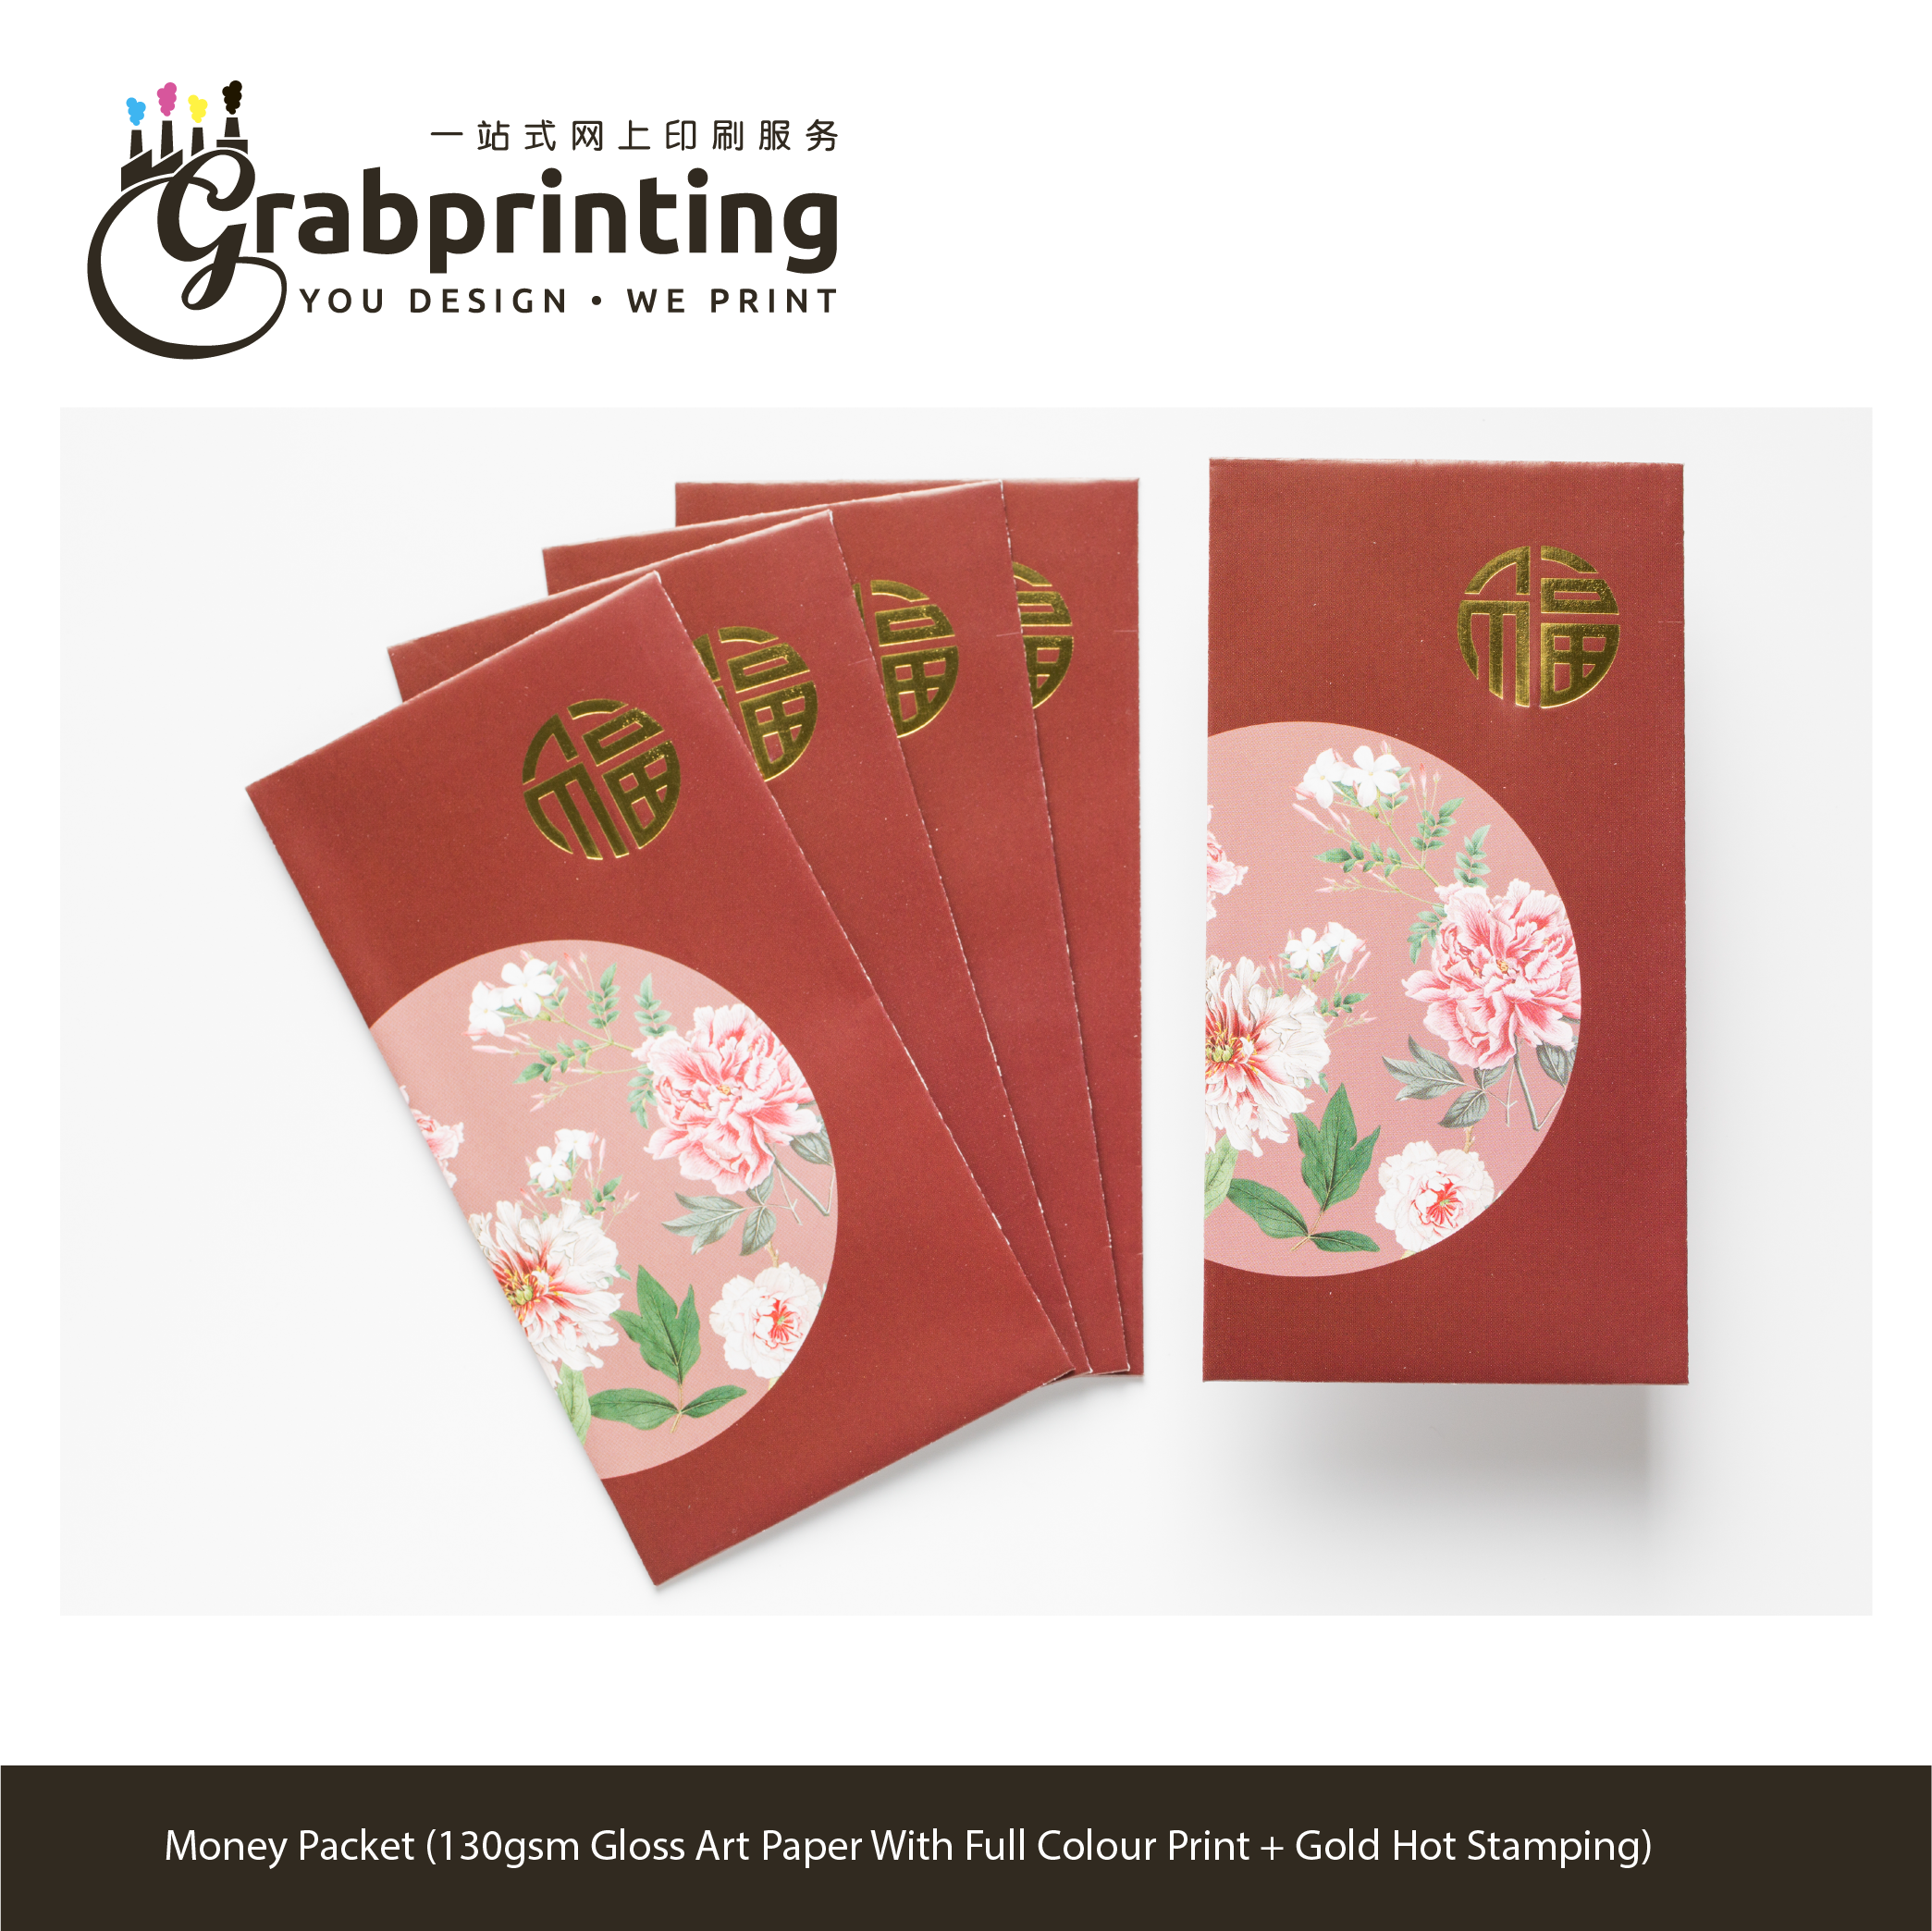 money packet printing Money Packet 130gsm Gloss Art Paper grabprinting 08 Money Packet 130gsm Gloss Art Paper With Full Colour Print Gold Hot Stamping 501px 501px